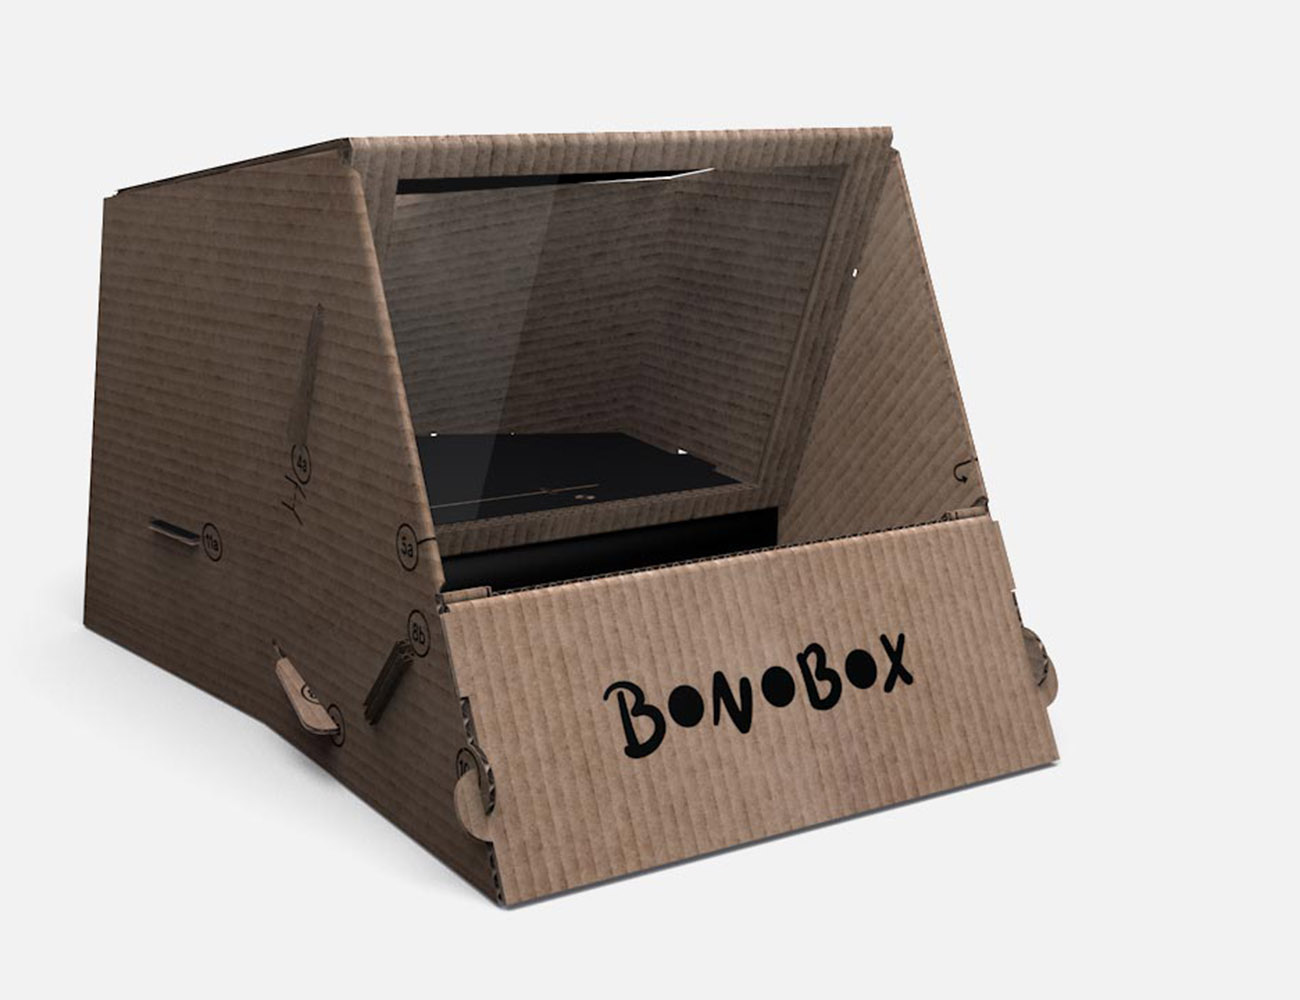 Bonobox – 3D Holograms With Your iPhone